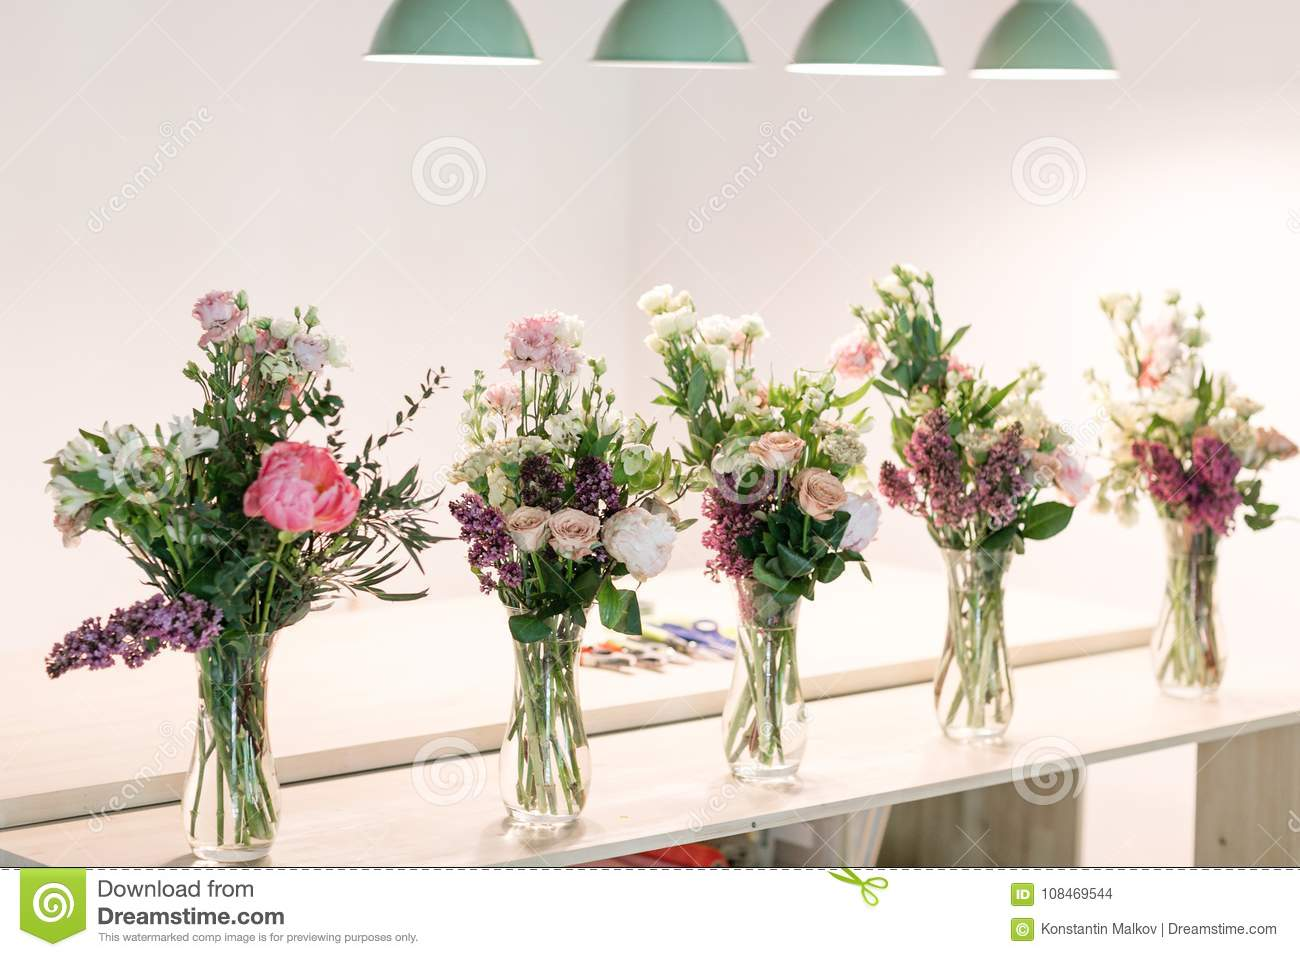 Kits For Students Master Class On Making Bouquets Summer Bouquet